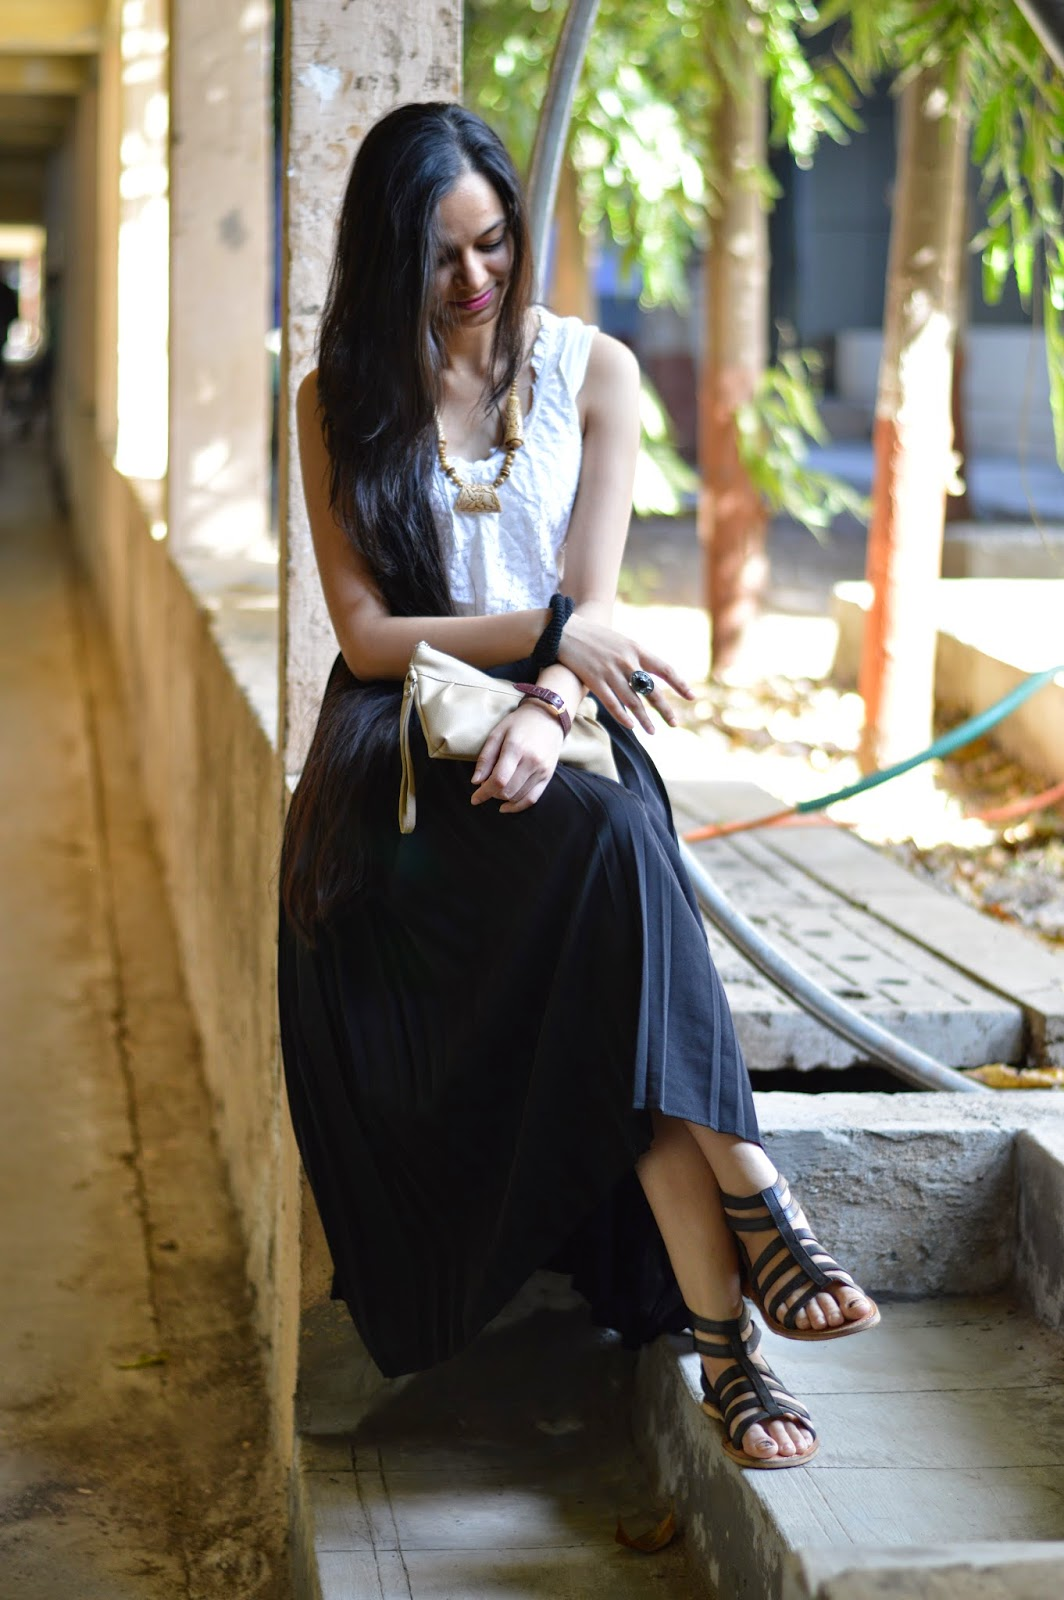 indian blogger, maxi skirt, pleated black maxi skirt, lace vest, statement necklace, pink lipstick, mumbai streetstyle, mumbai fashion blogger, mumbai blogger, fashion for less, streetshopping, looks for less, how to wear a maxi skirt, what to buy in jaipur